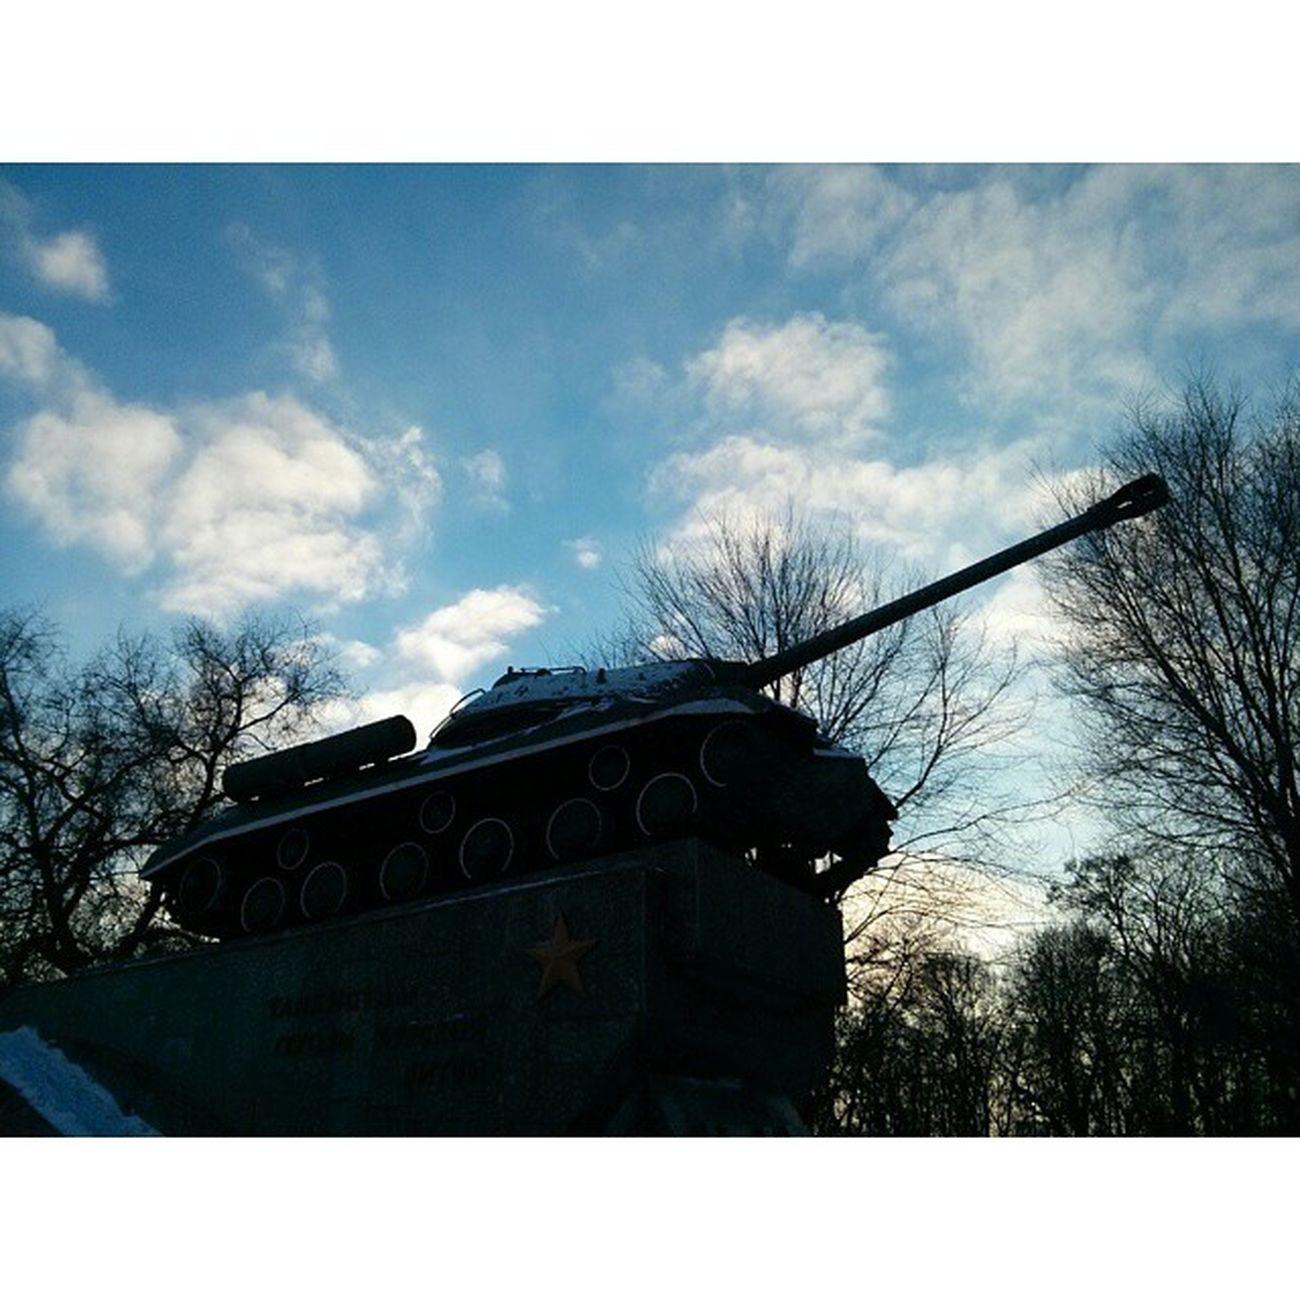 Instasize Танк ис3 курск зима Россия изархива холодно пямятник история война Tank Is3 Kursk Winter Fromthearchives Cold Pyamyatnik History War Russian